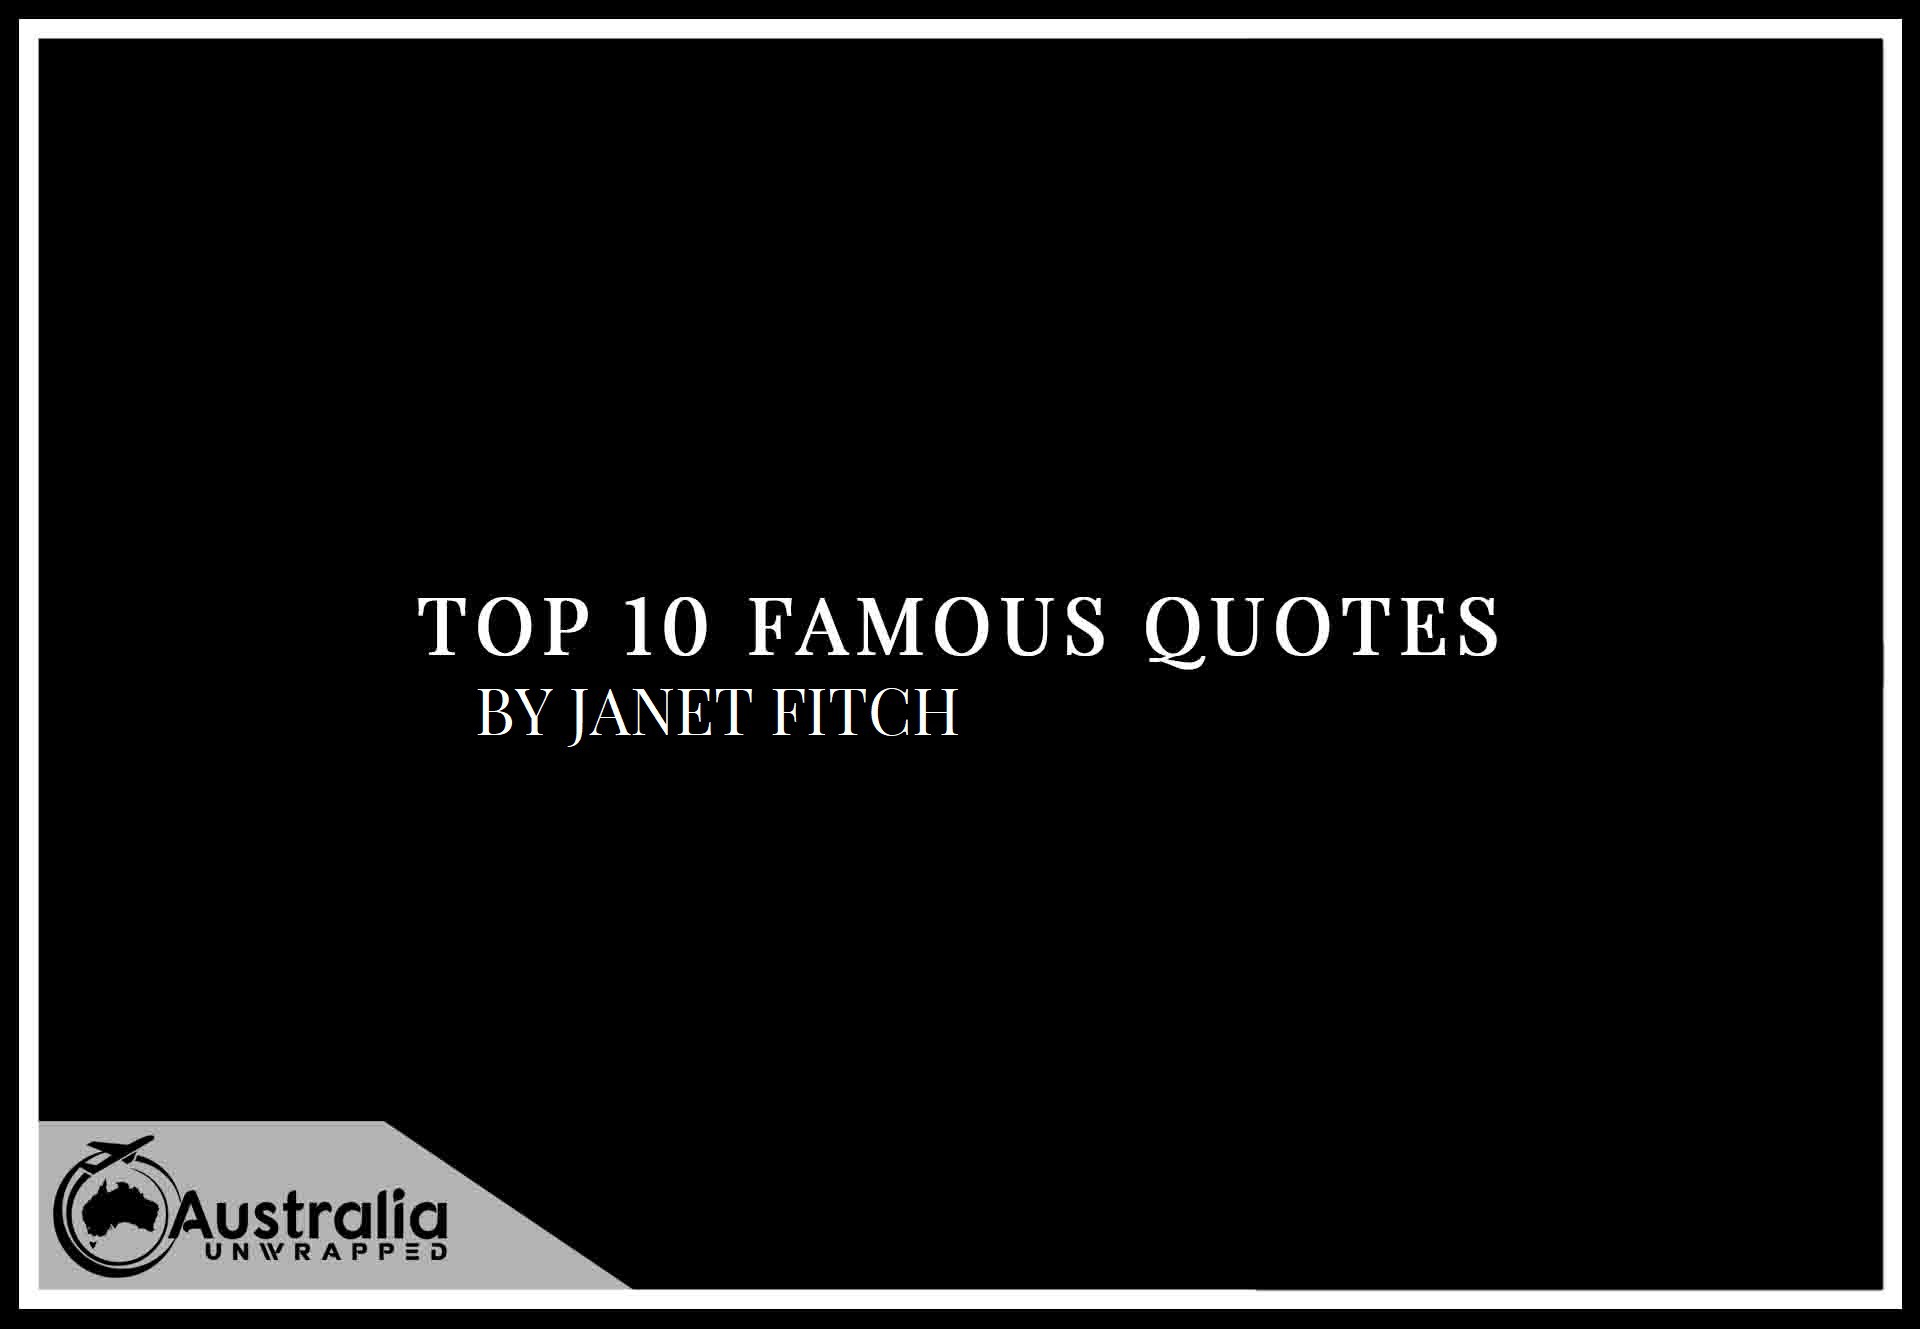 Top 10 Famous Quotes by Author Janet Fitch